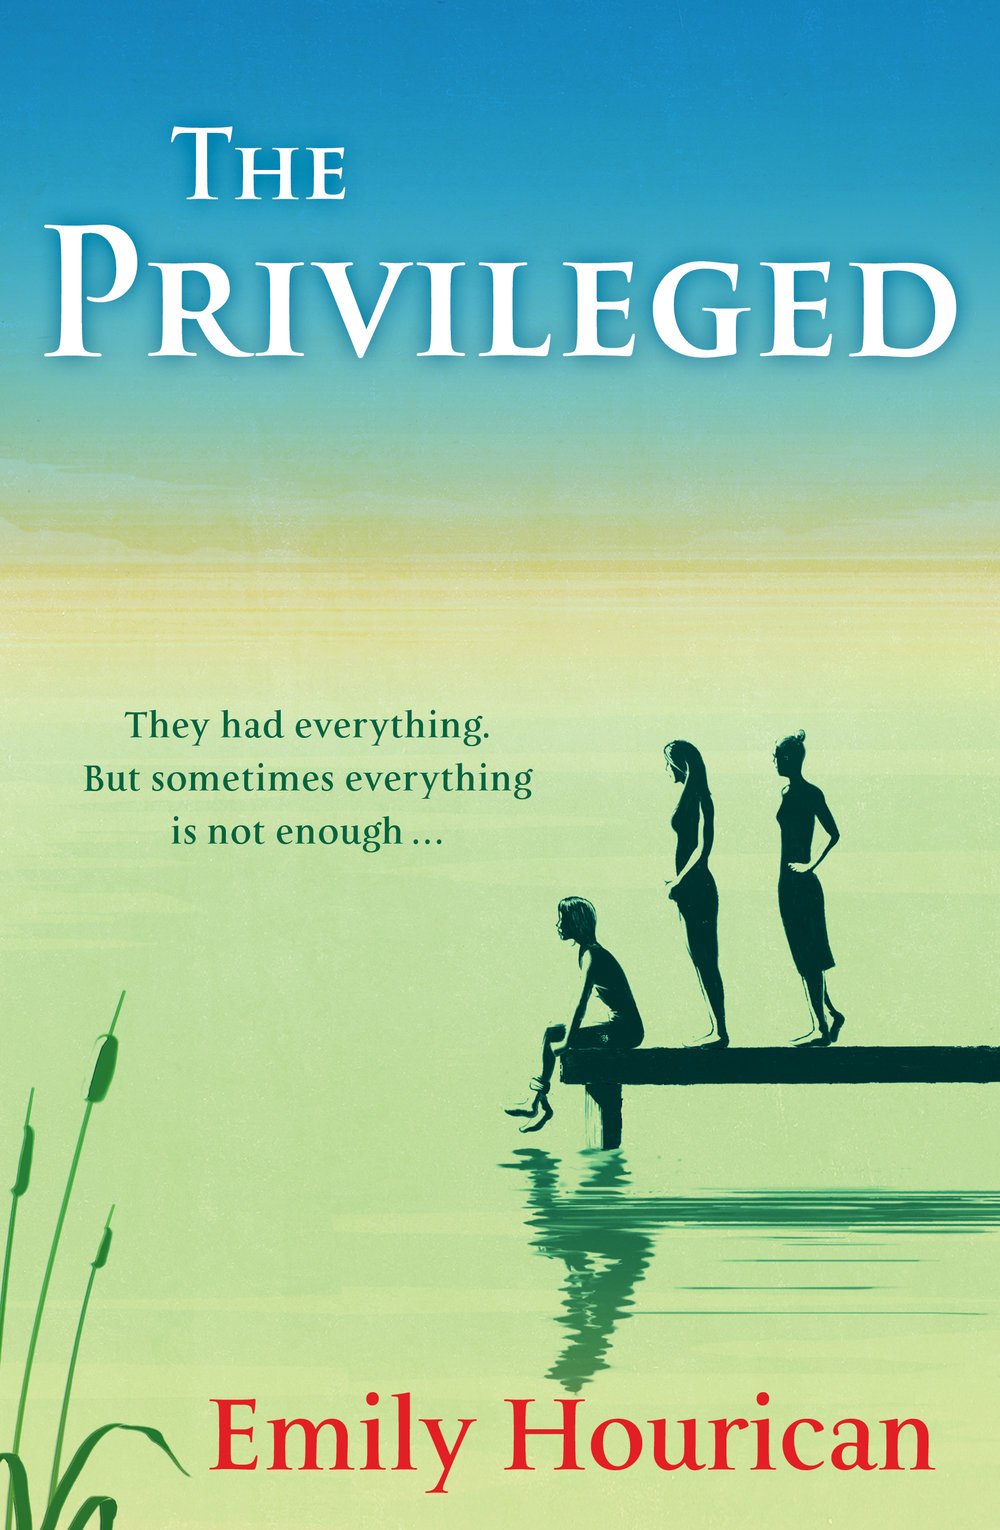 The Privileged by Emily Hourican.jpg